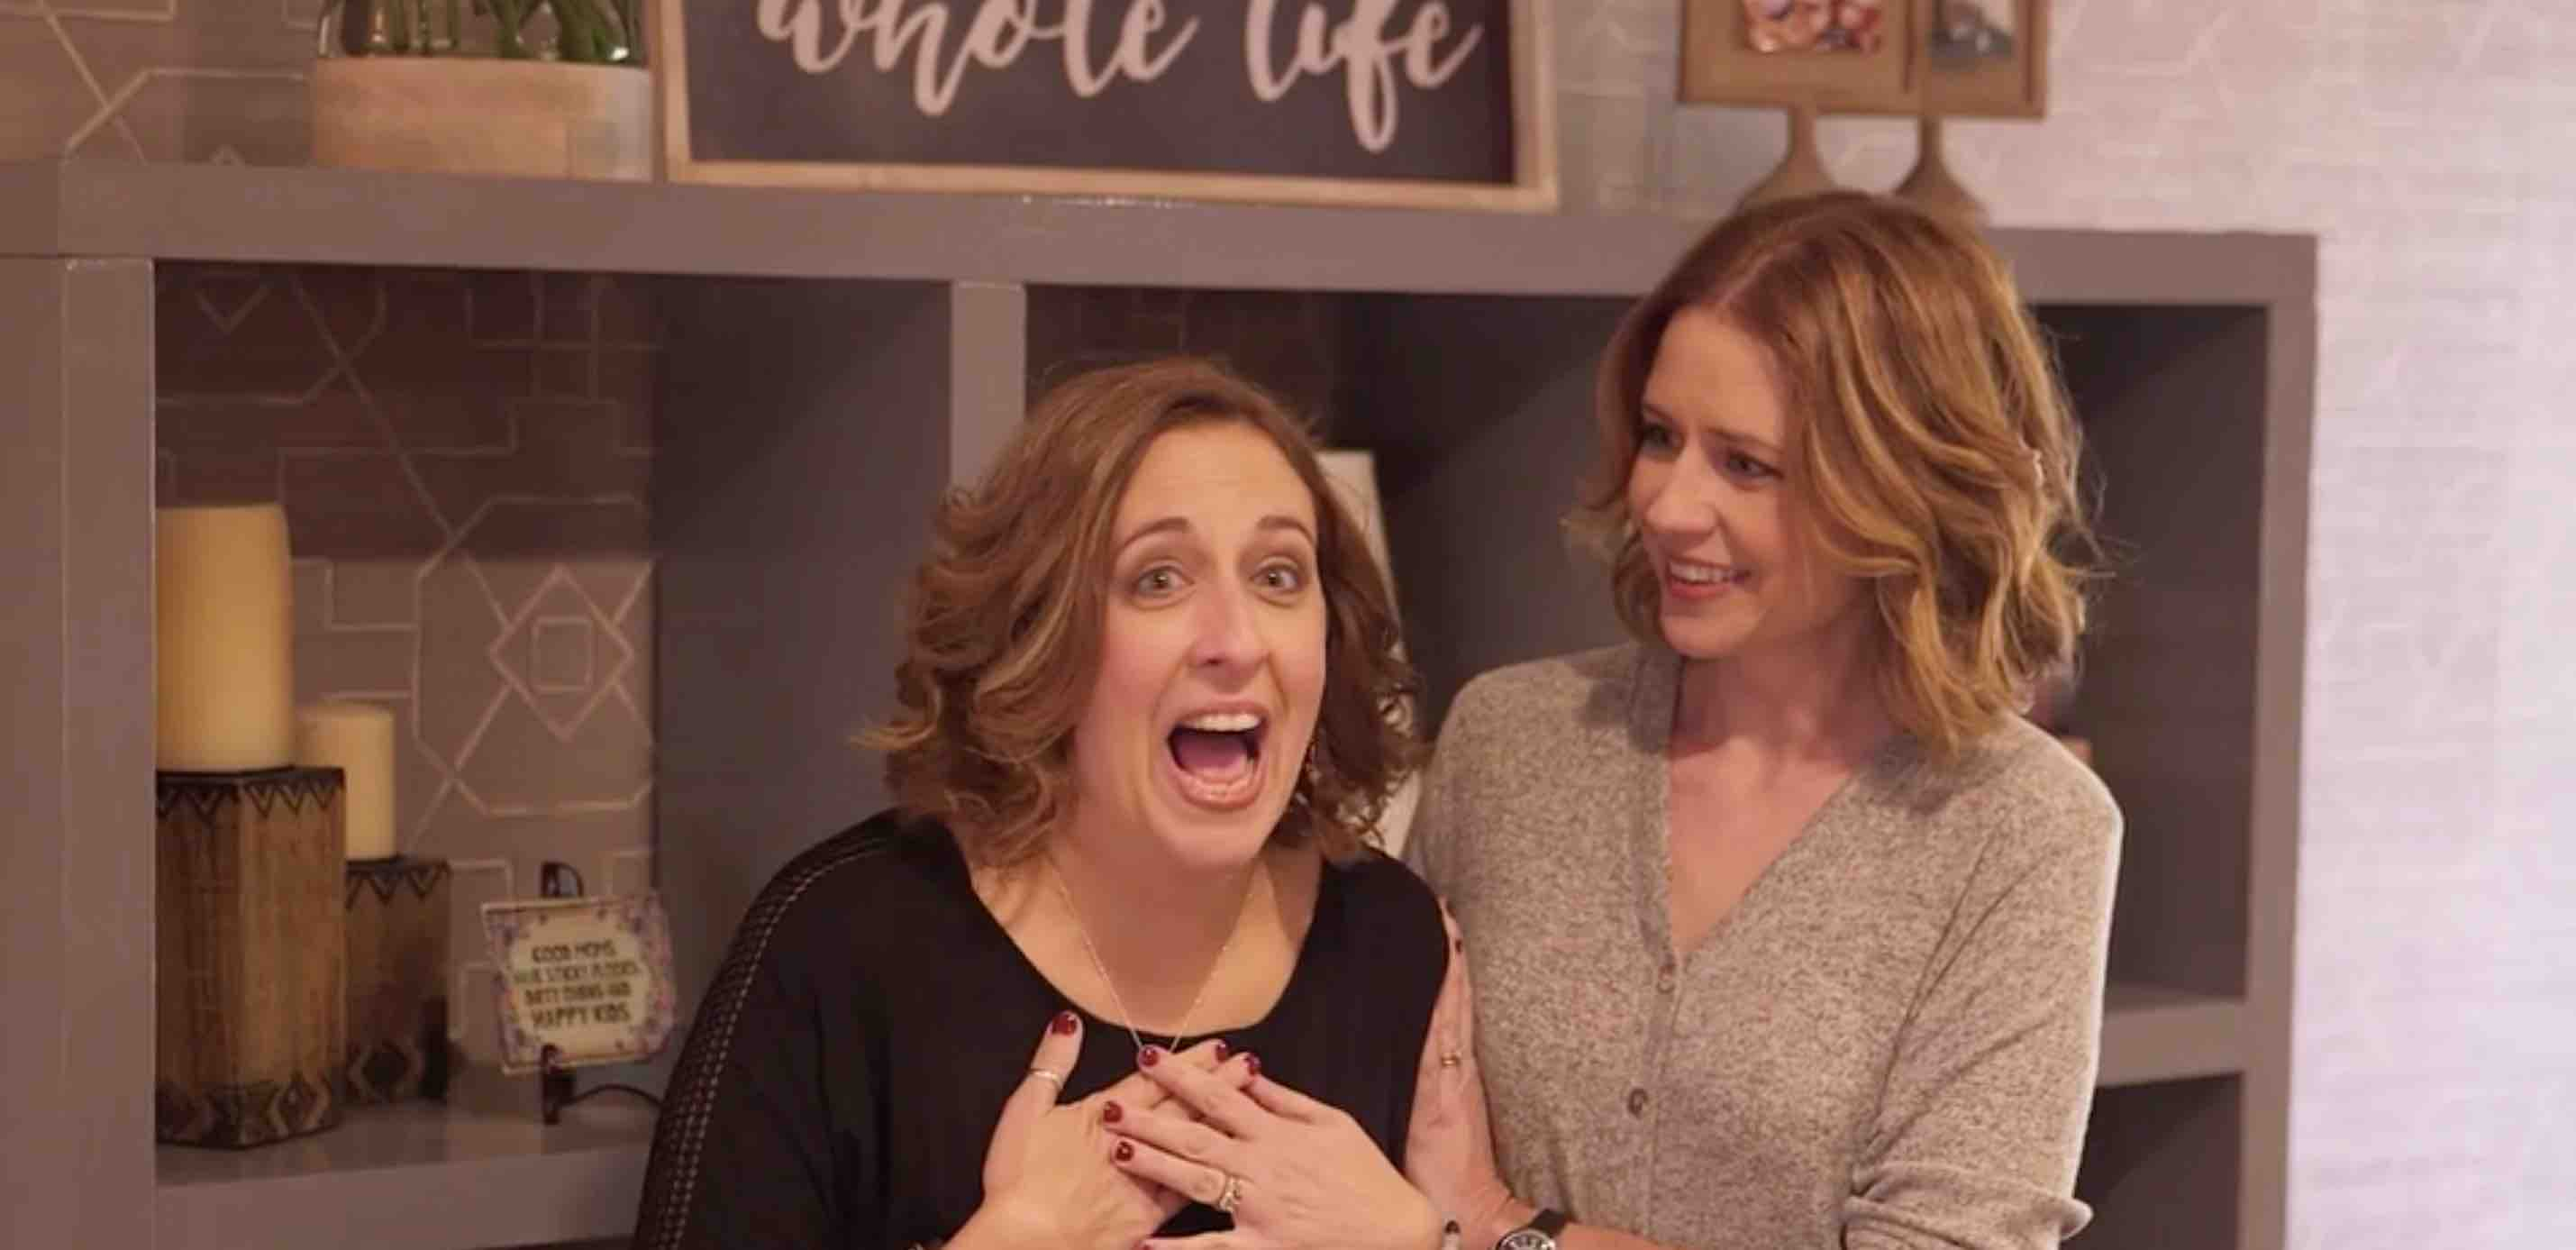 Jenna fischer showing images for sister photo 2